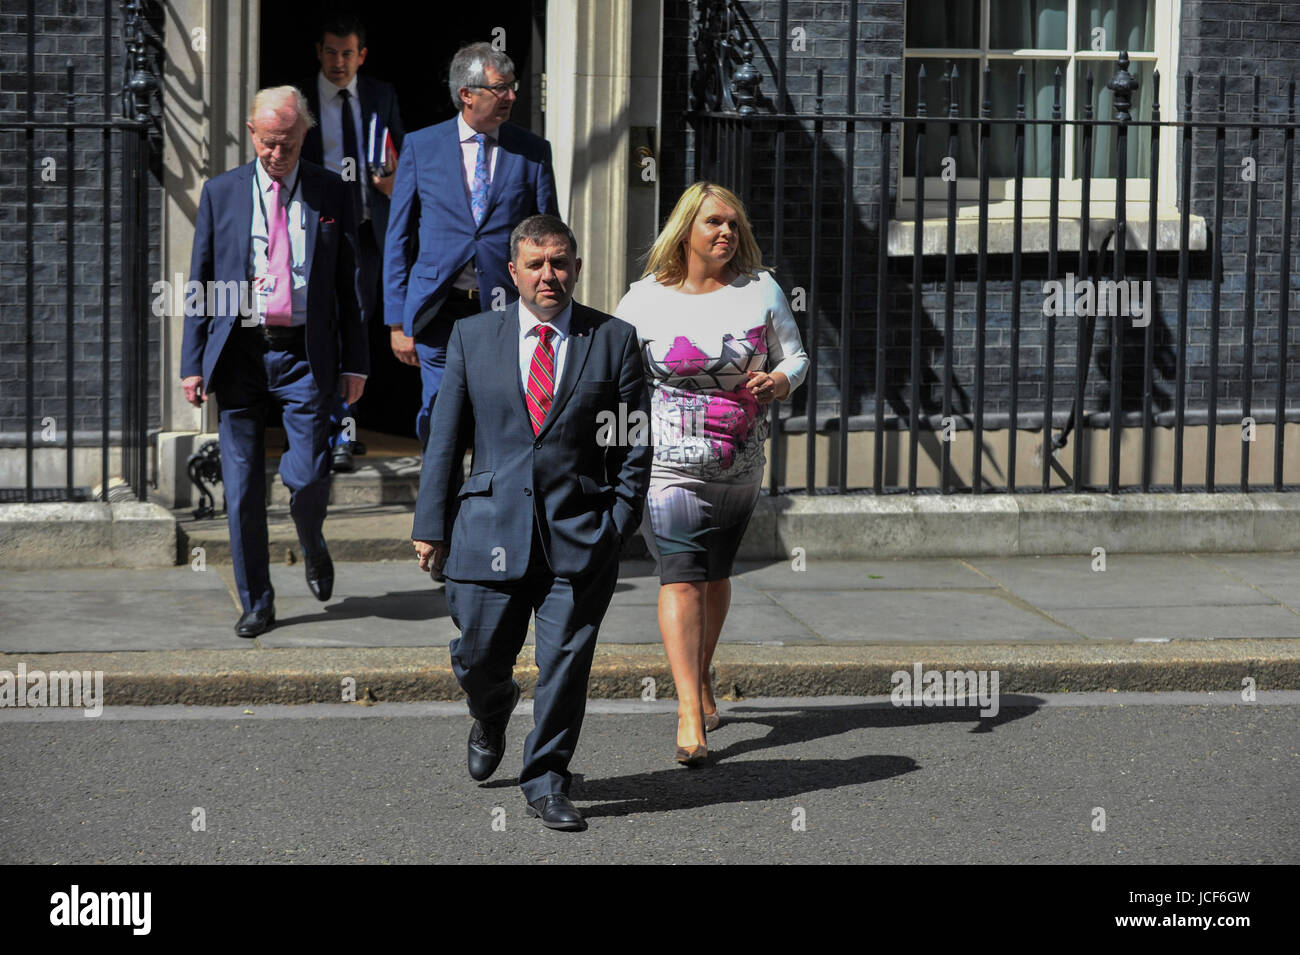 London, UK. 15th June, 2017. Robin Swann, leader of the Ulster Unionist Party, exits Number 10. Members of the Northern - Stock Image